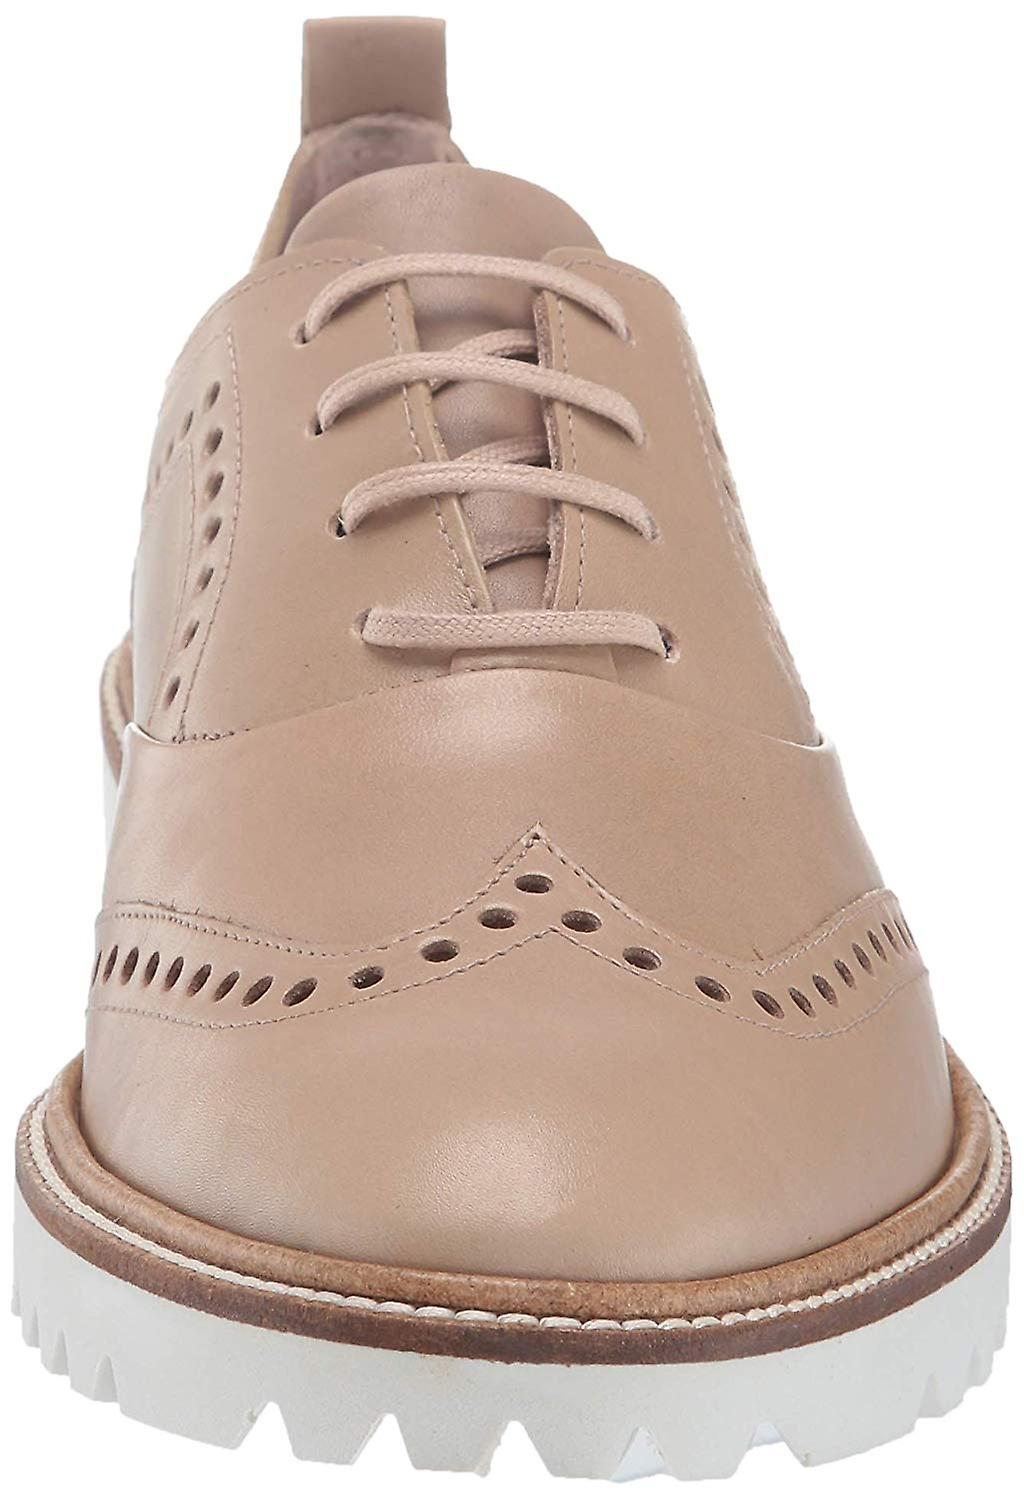 ECCO Frauen's Incise Tailored Wing Tip Oxford Flat